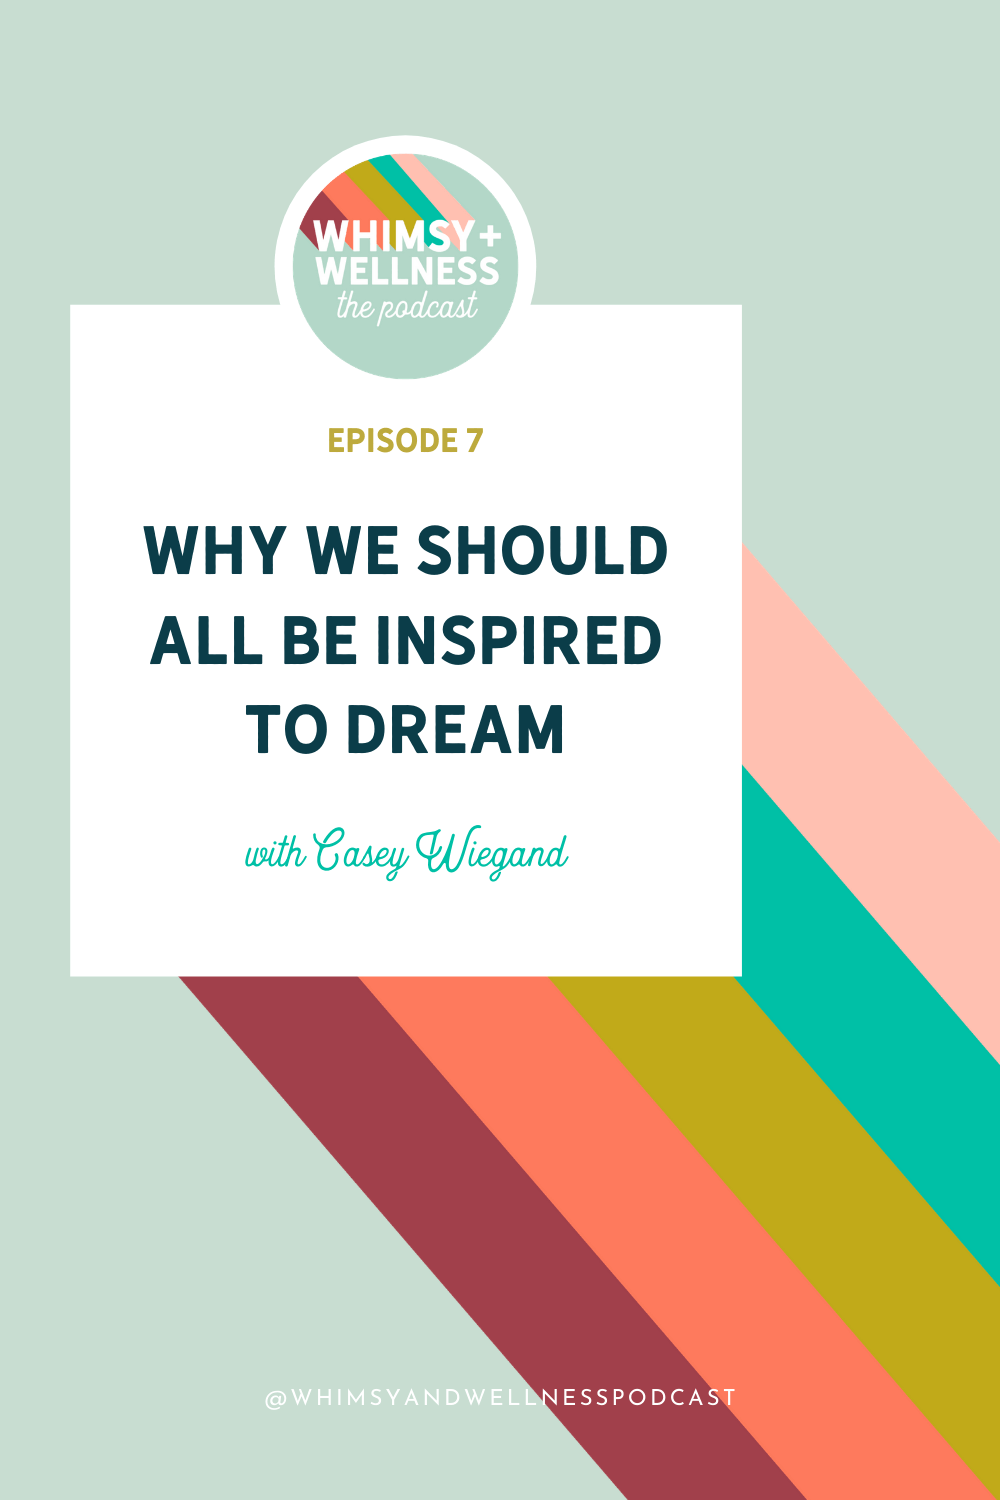 whimsy and wellness inspired to dream with casey wiegand